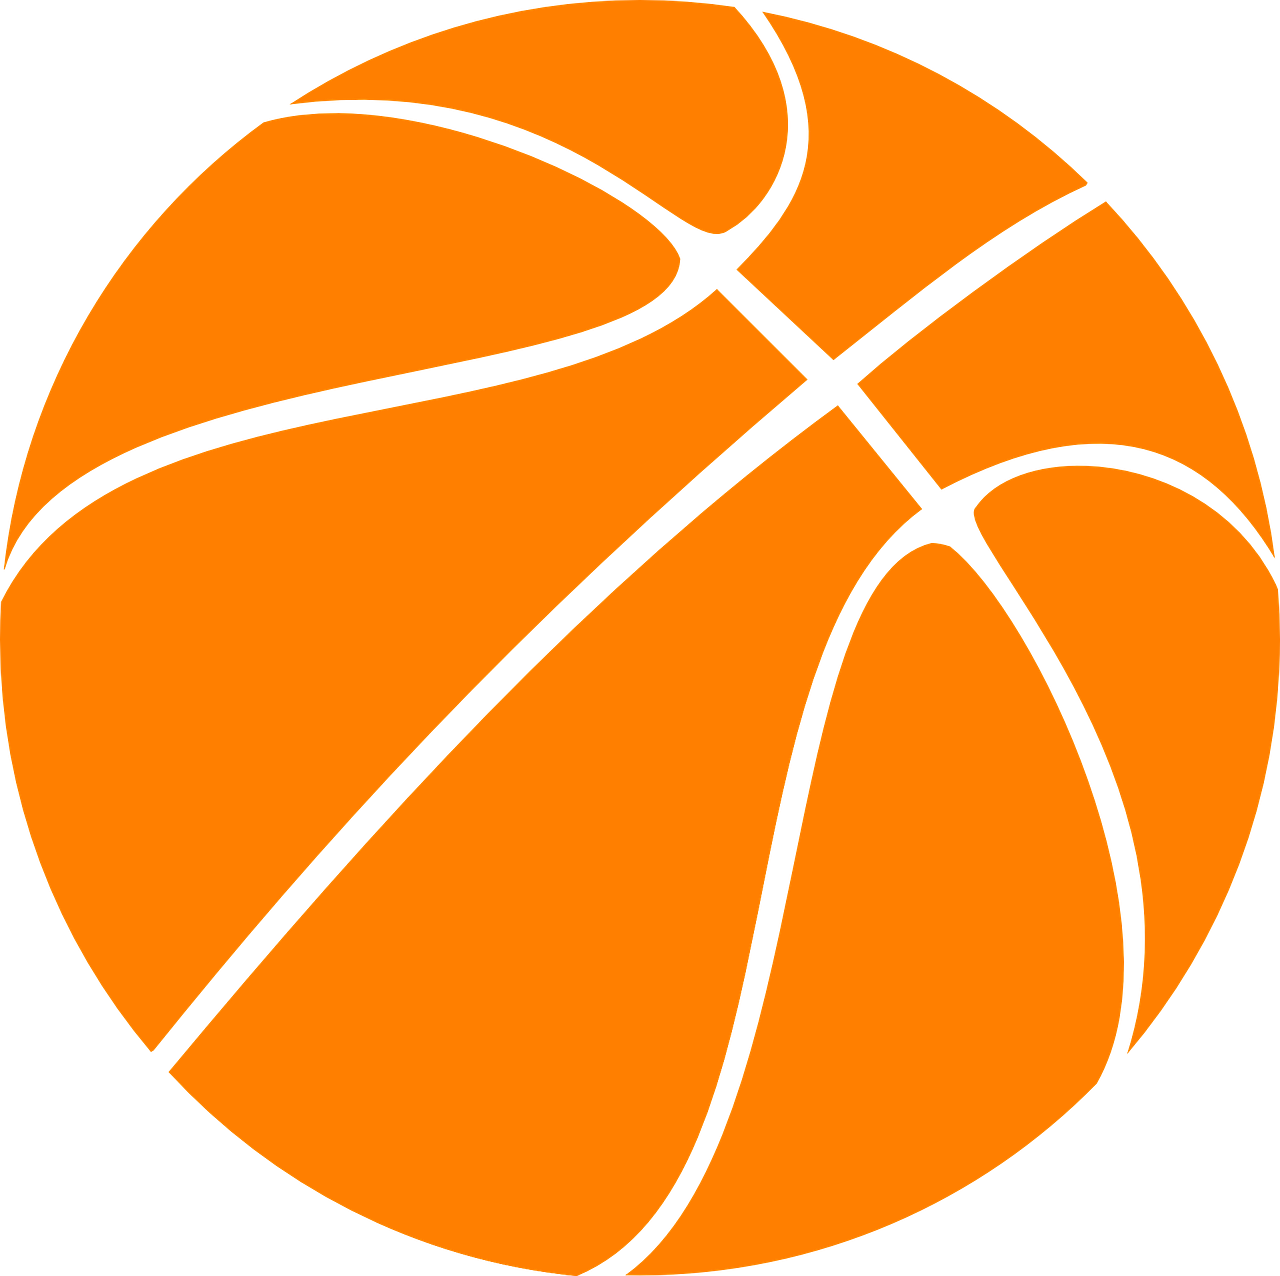 Basketball volunteers needed clipart vector black and white stock When Germany and San Francisco Meet! - Cameron House vector black and white stock